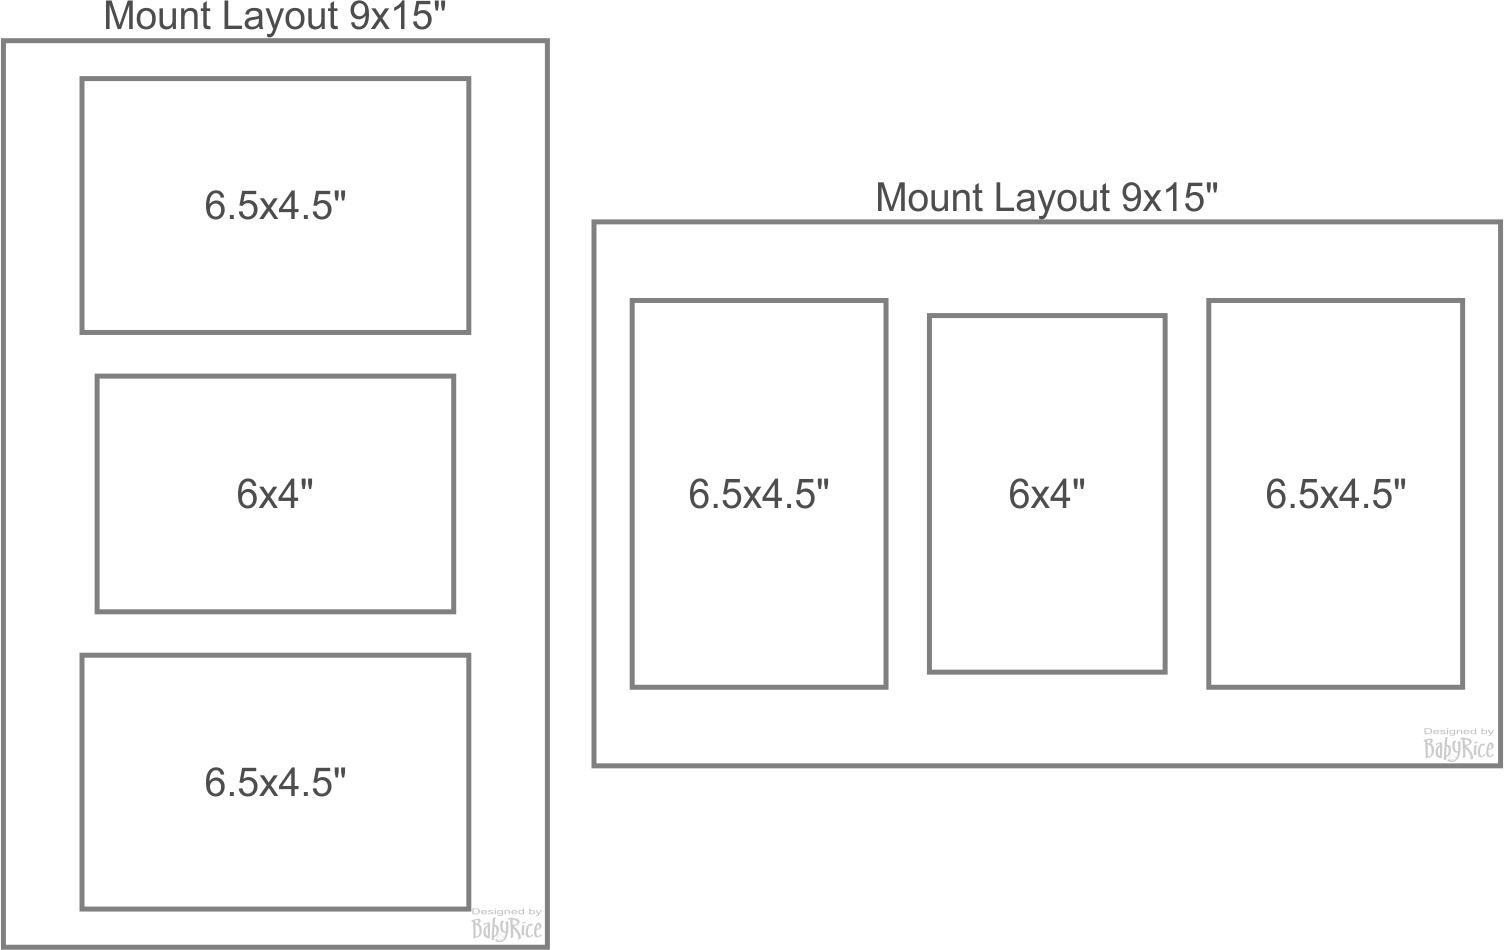 3 Hole Mount Specification